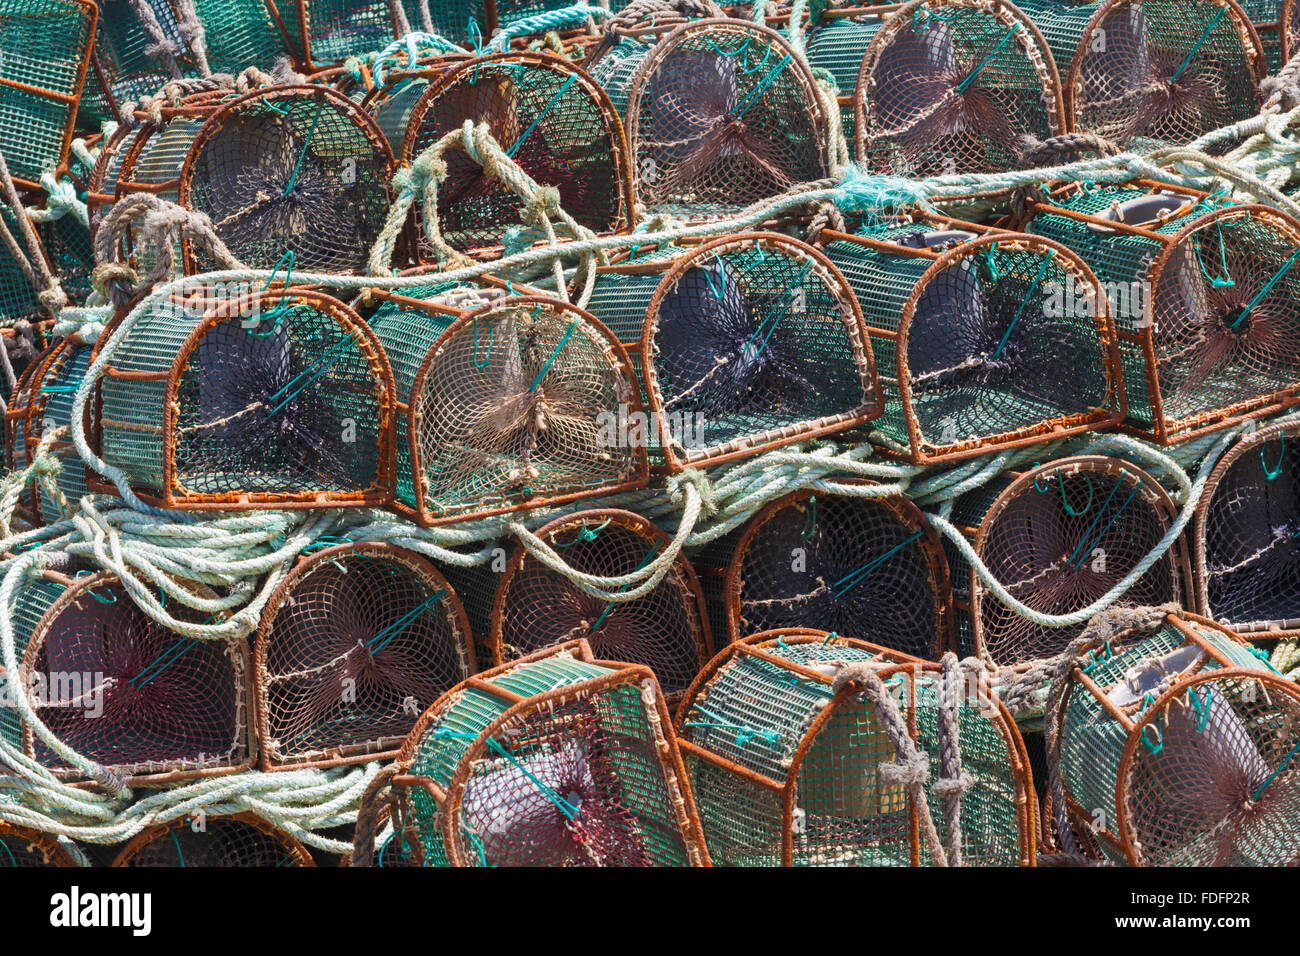 Lobster pots, Galicia, Spain. - Stock Image